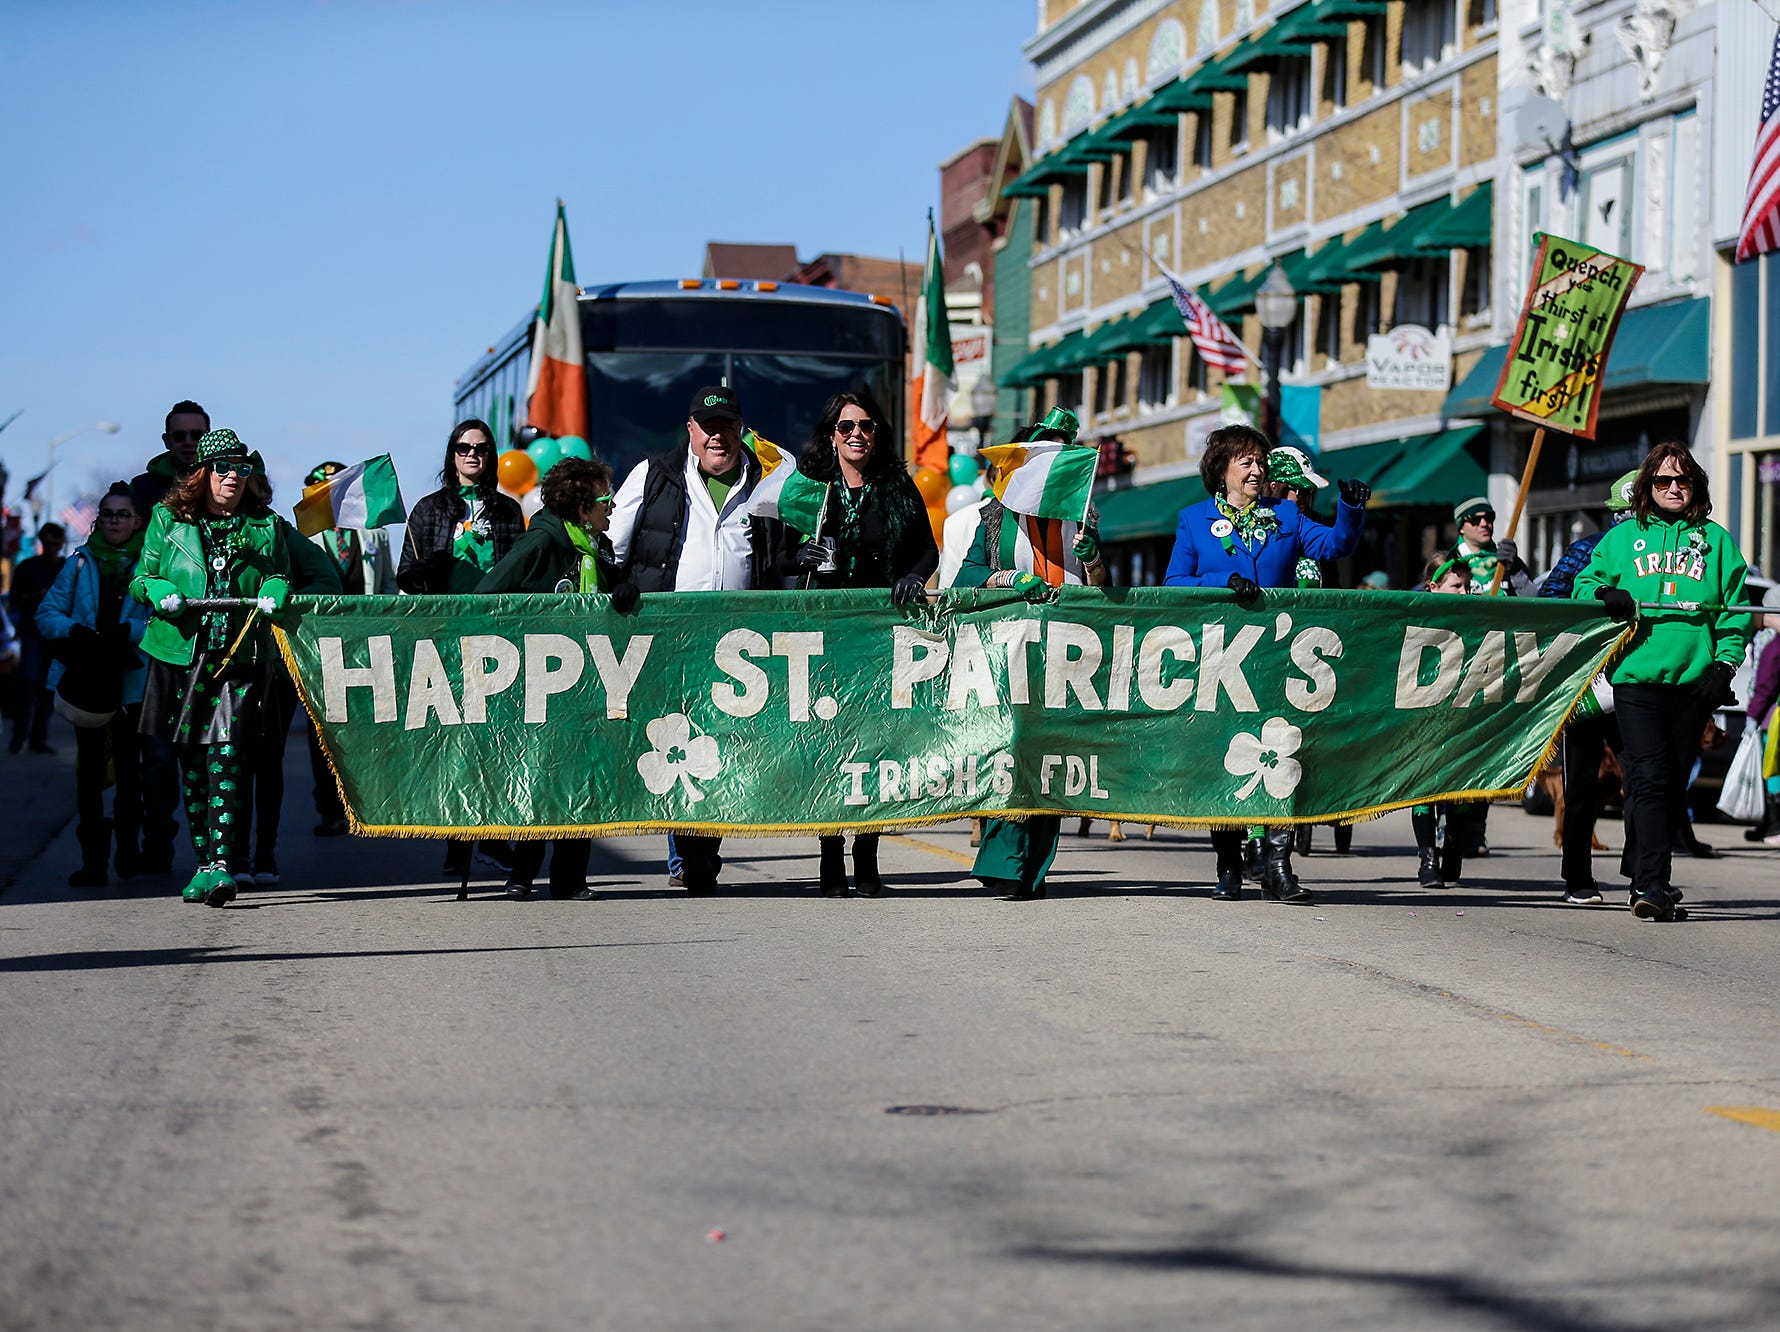 A group of people hold a banner for Irish's Bar in the City of Fond du Lac St. Patrick's Day Parade Saturday, March 16, 2019 on Main Street in downtown Fond du Lac. Hundreds of people lined the street to watch over 50 parade participants. Doug Raflik/USA TODAY NETWORK-Wisconsin